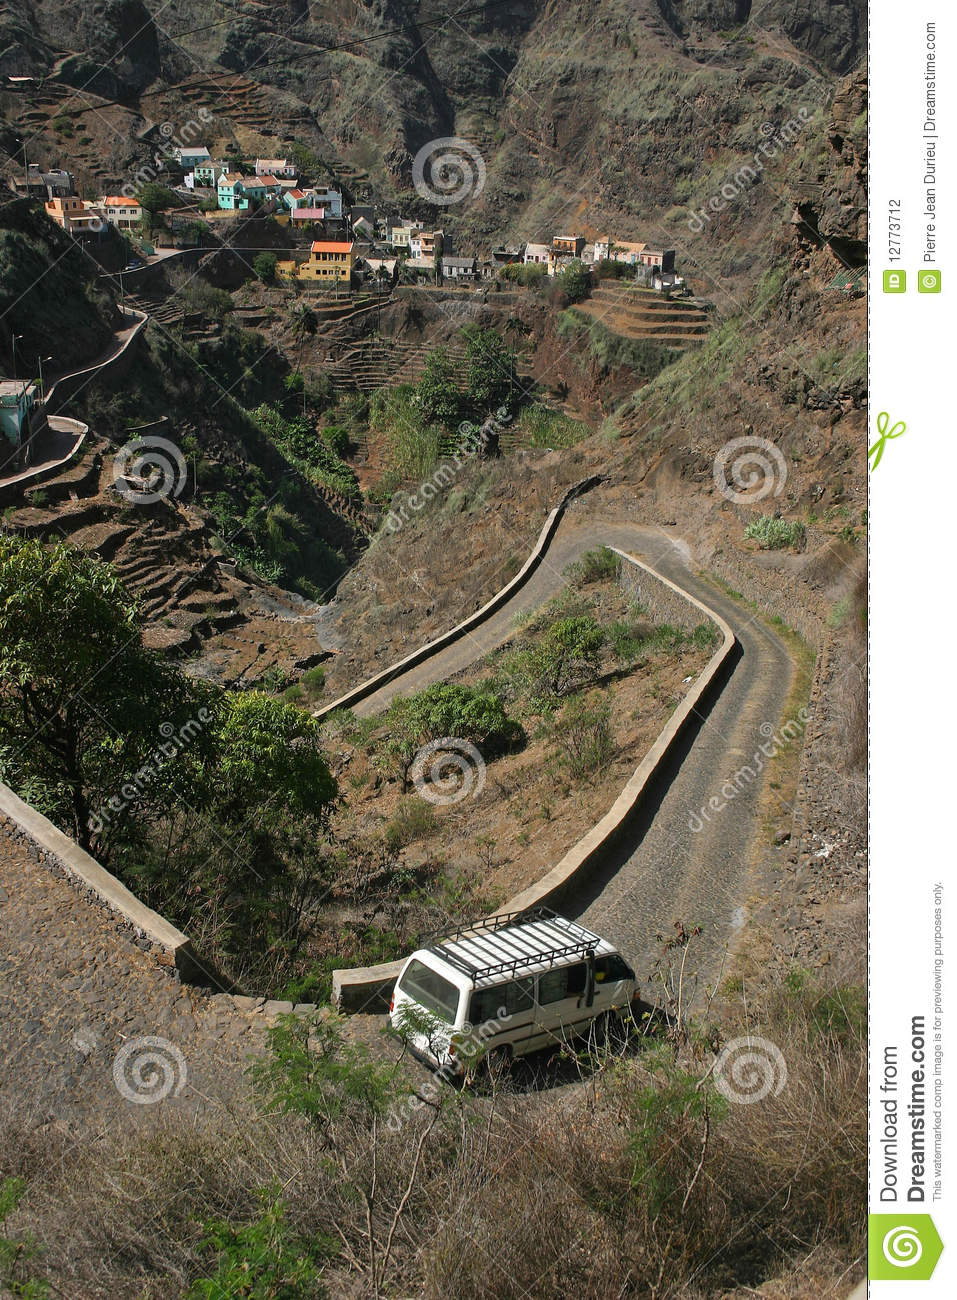 Cape Verde mountain village